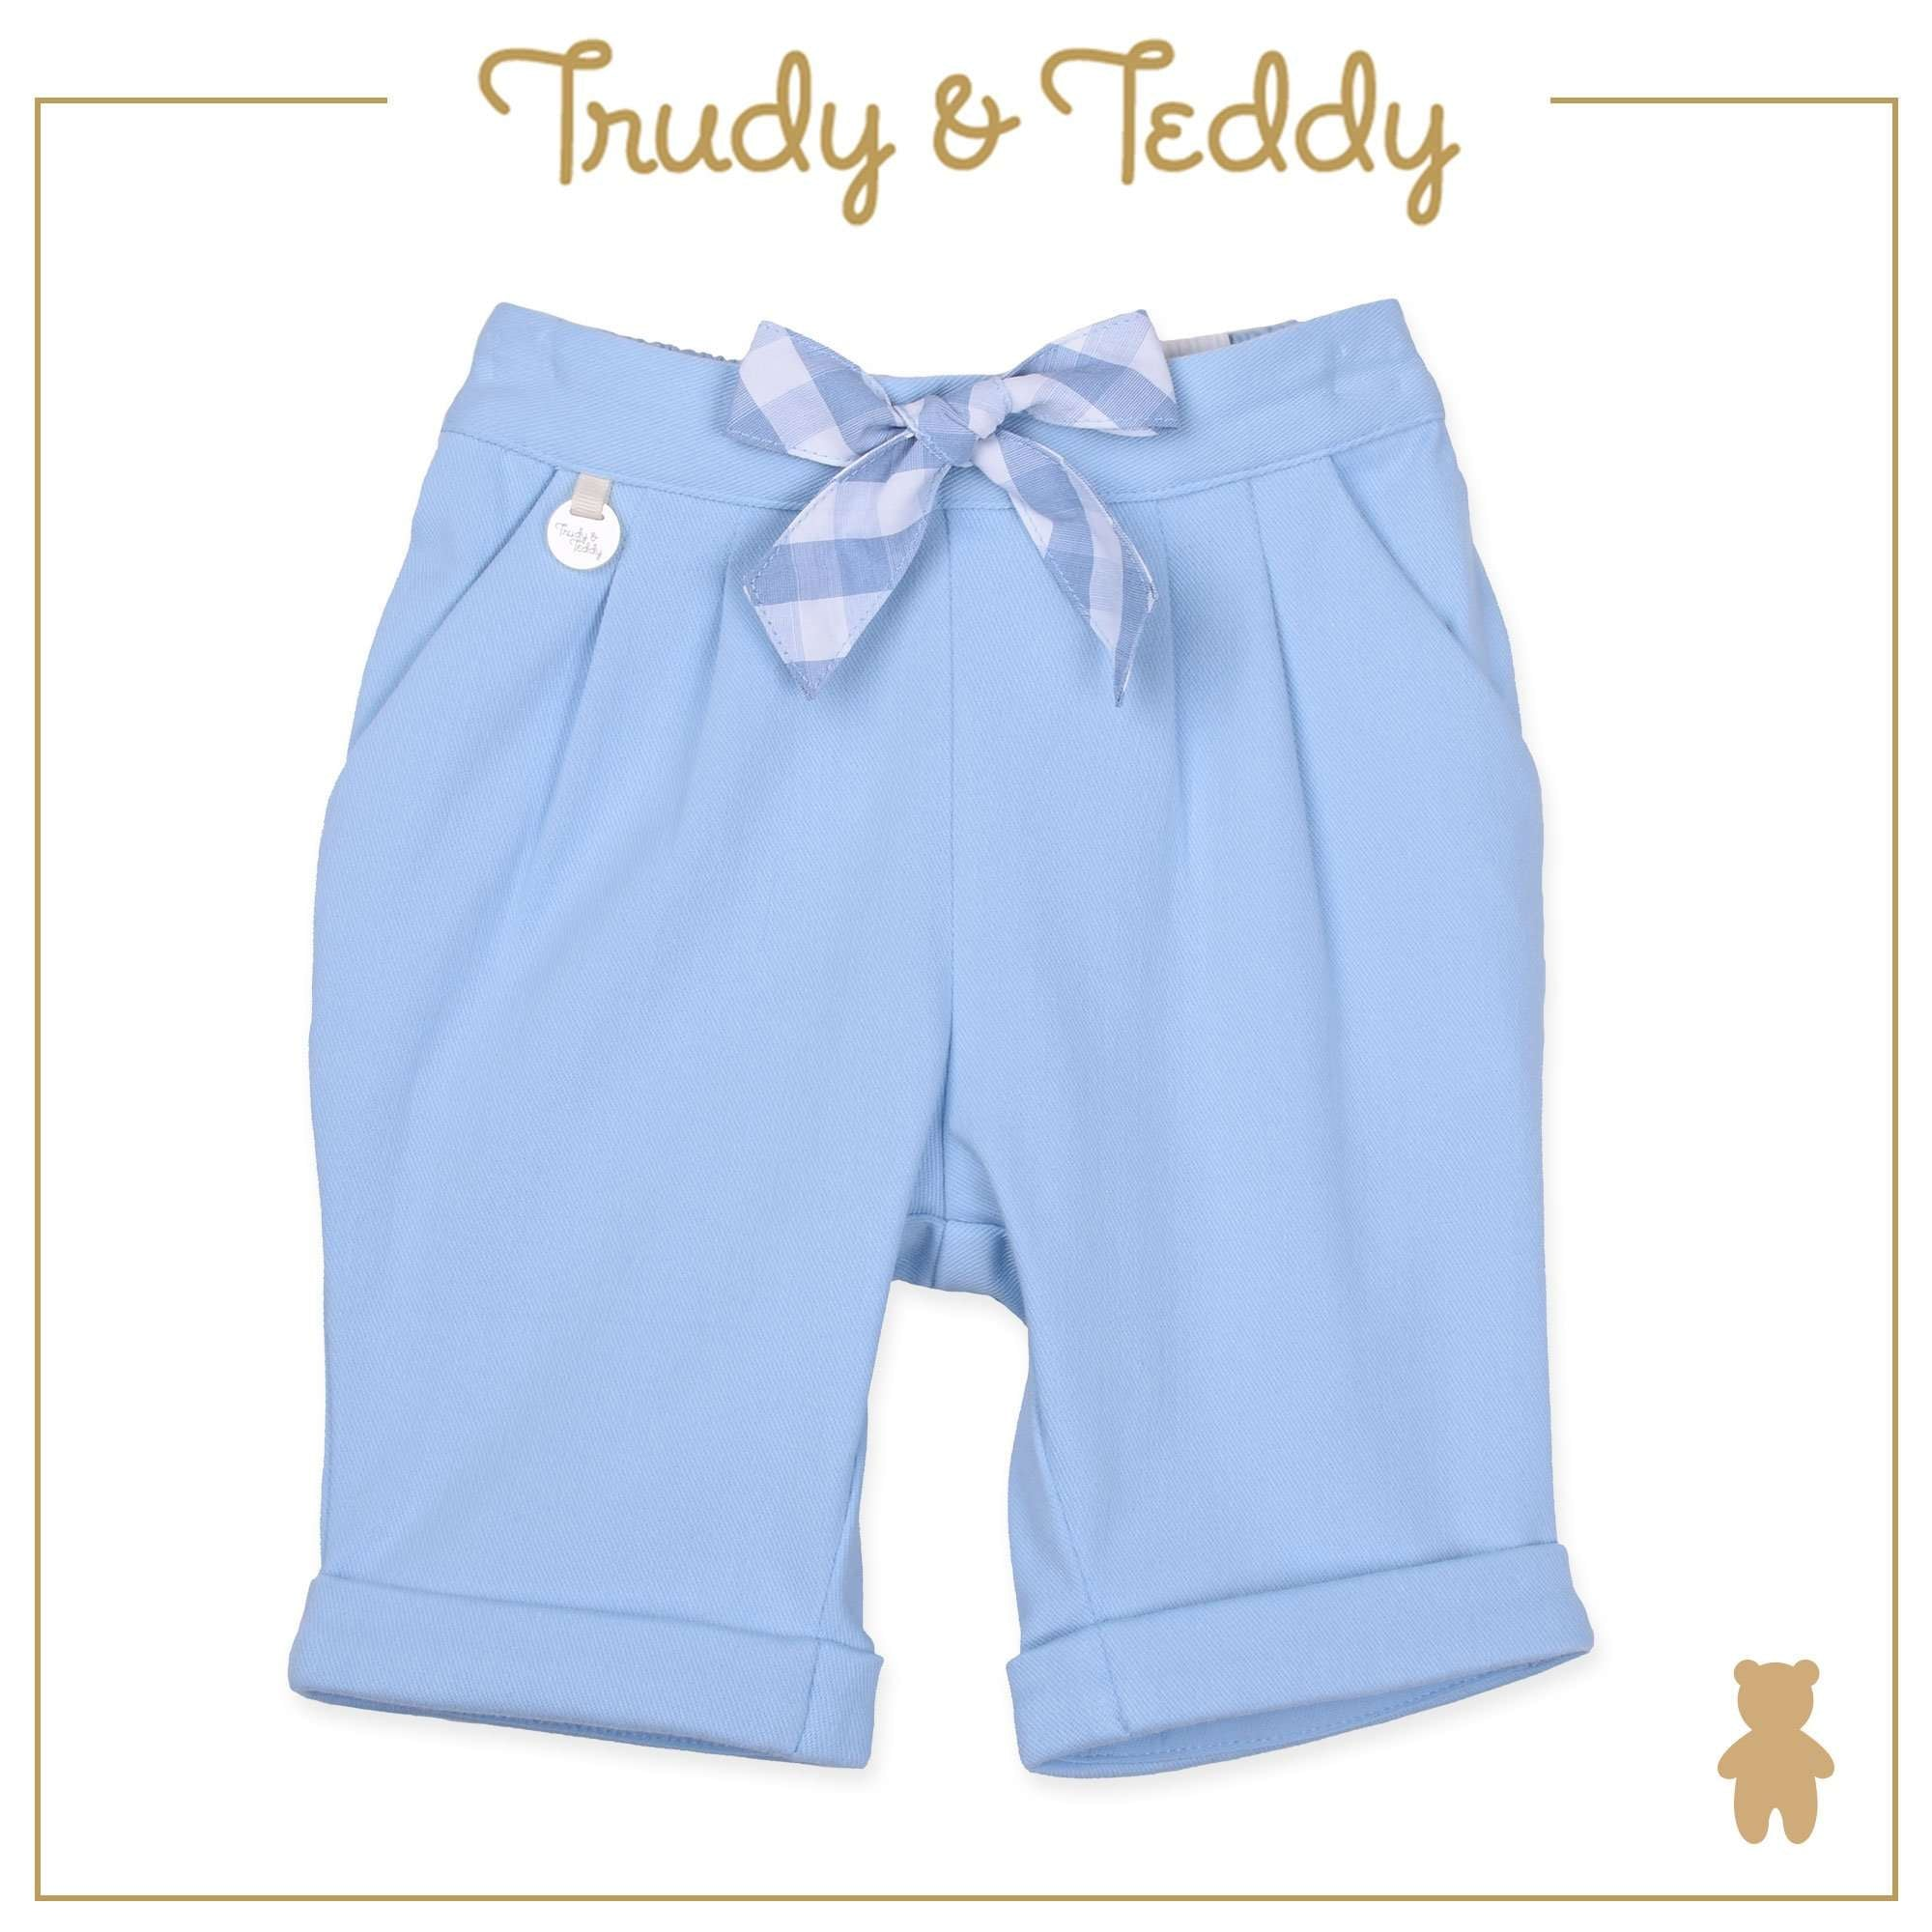 Trudy & Teddy Baby Girl Capri Pants - Light Blue T924001-2803-L1 : Buy Trudy & Teddy online at CMG.MY